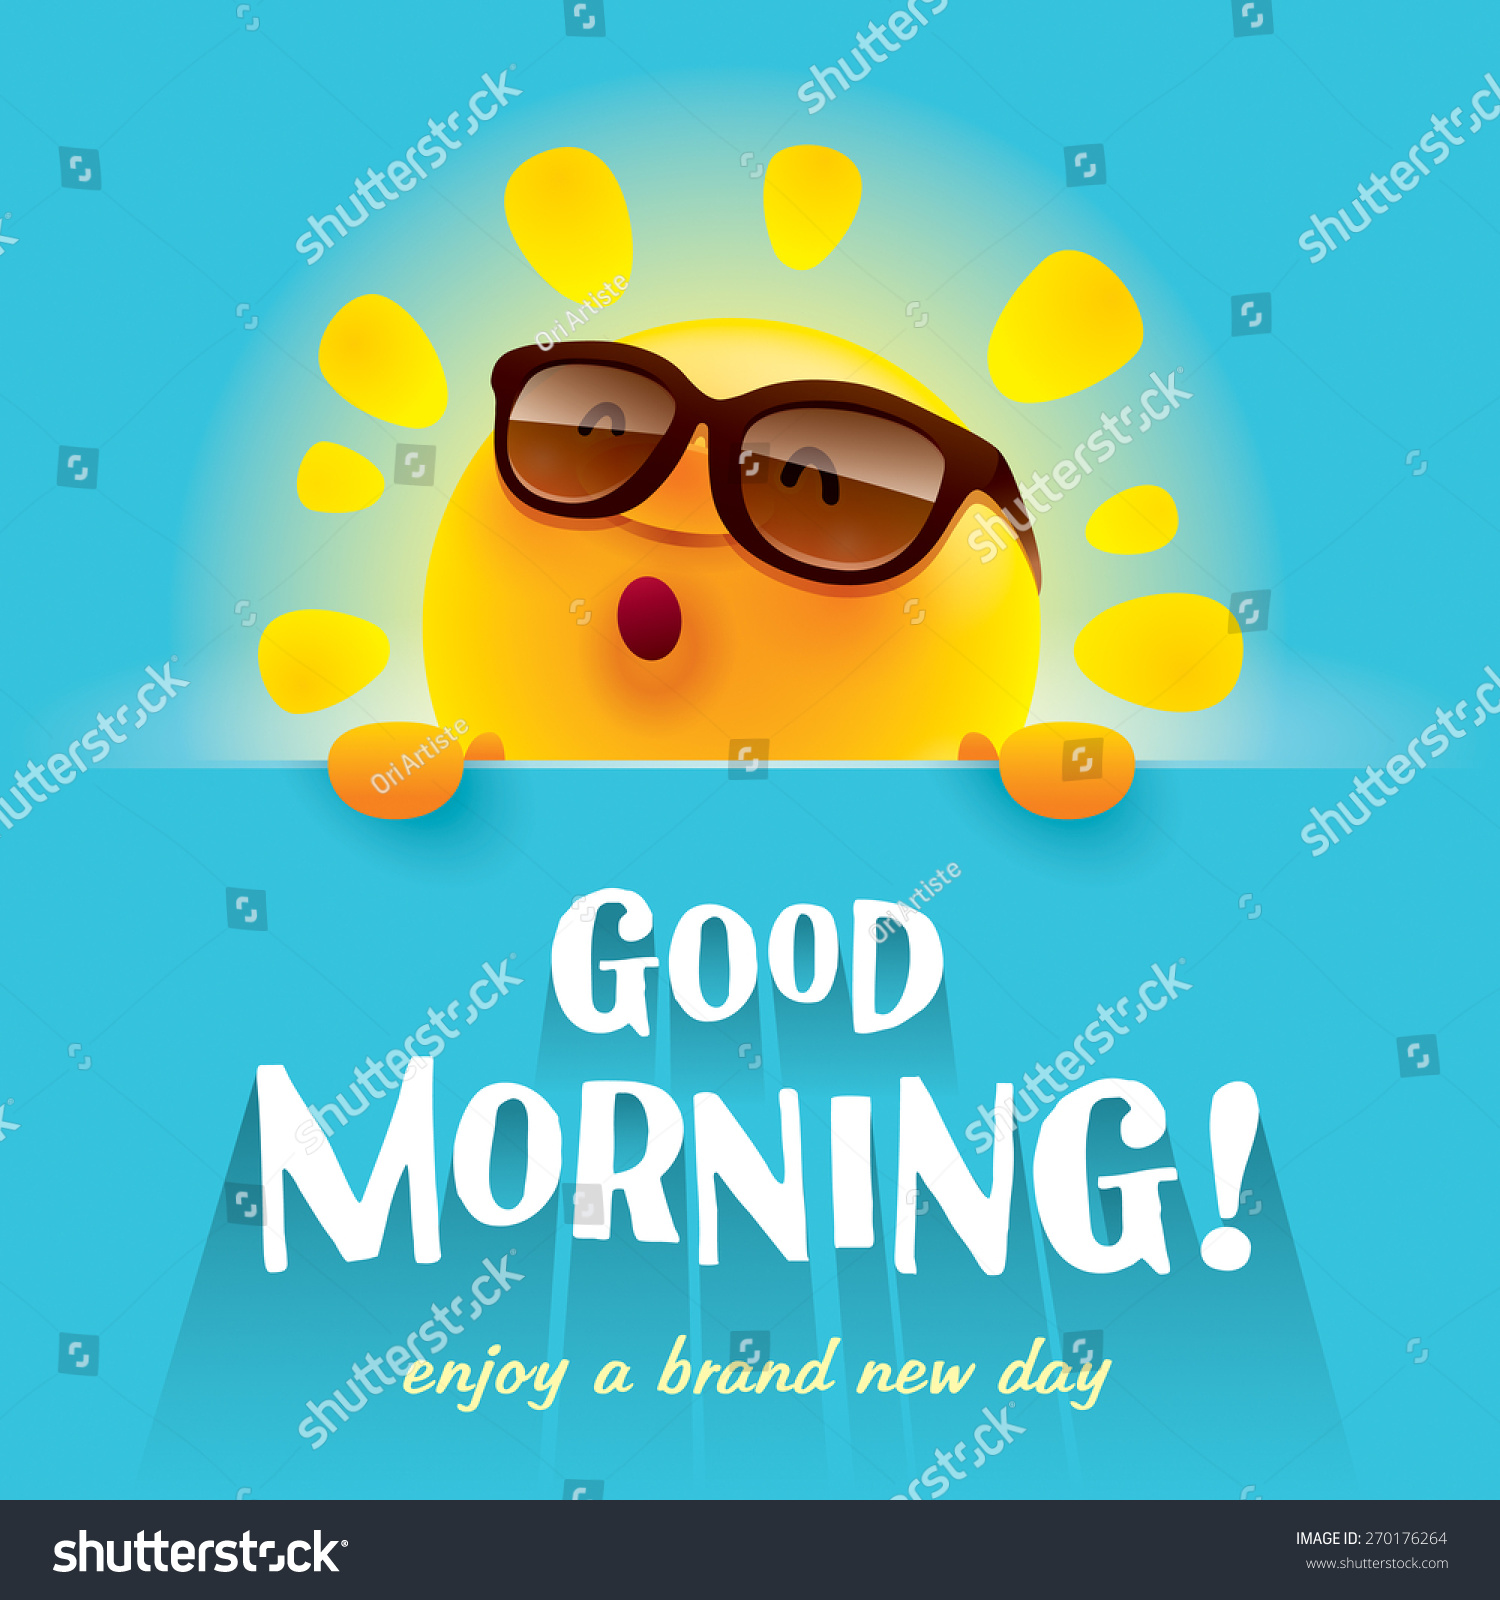 Good Morning Stock Vector (Royalty Free) 270176264